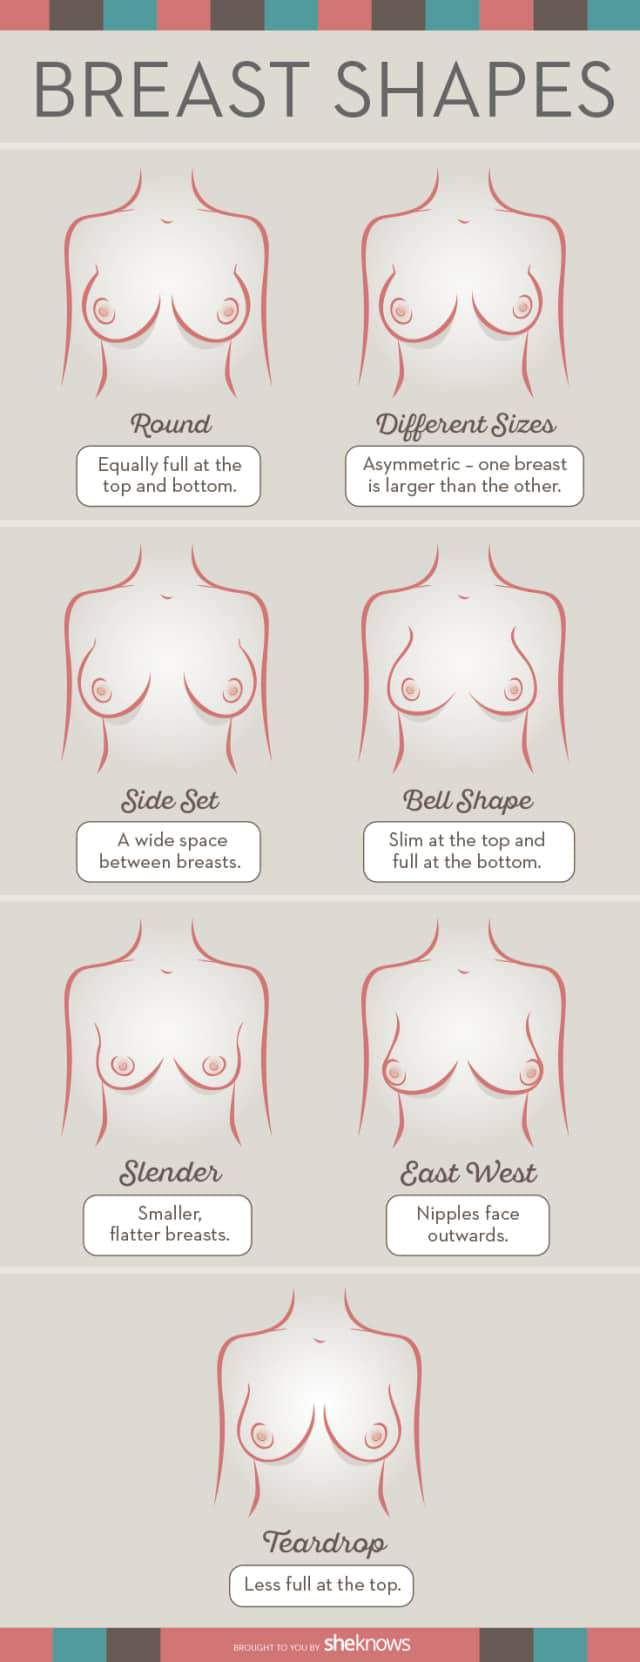 What is your breast shape? Image by SheKnows.com